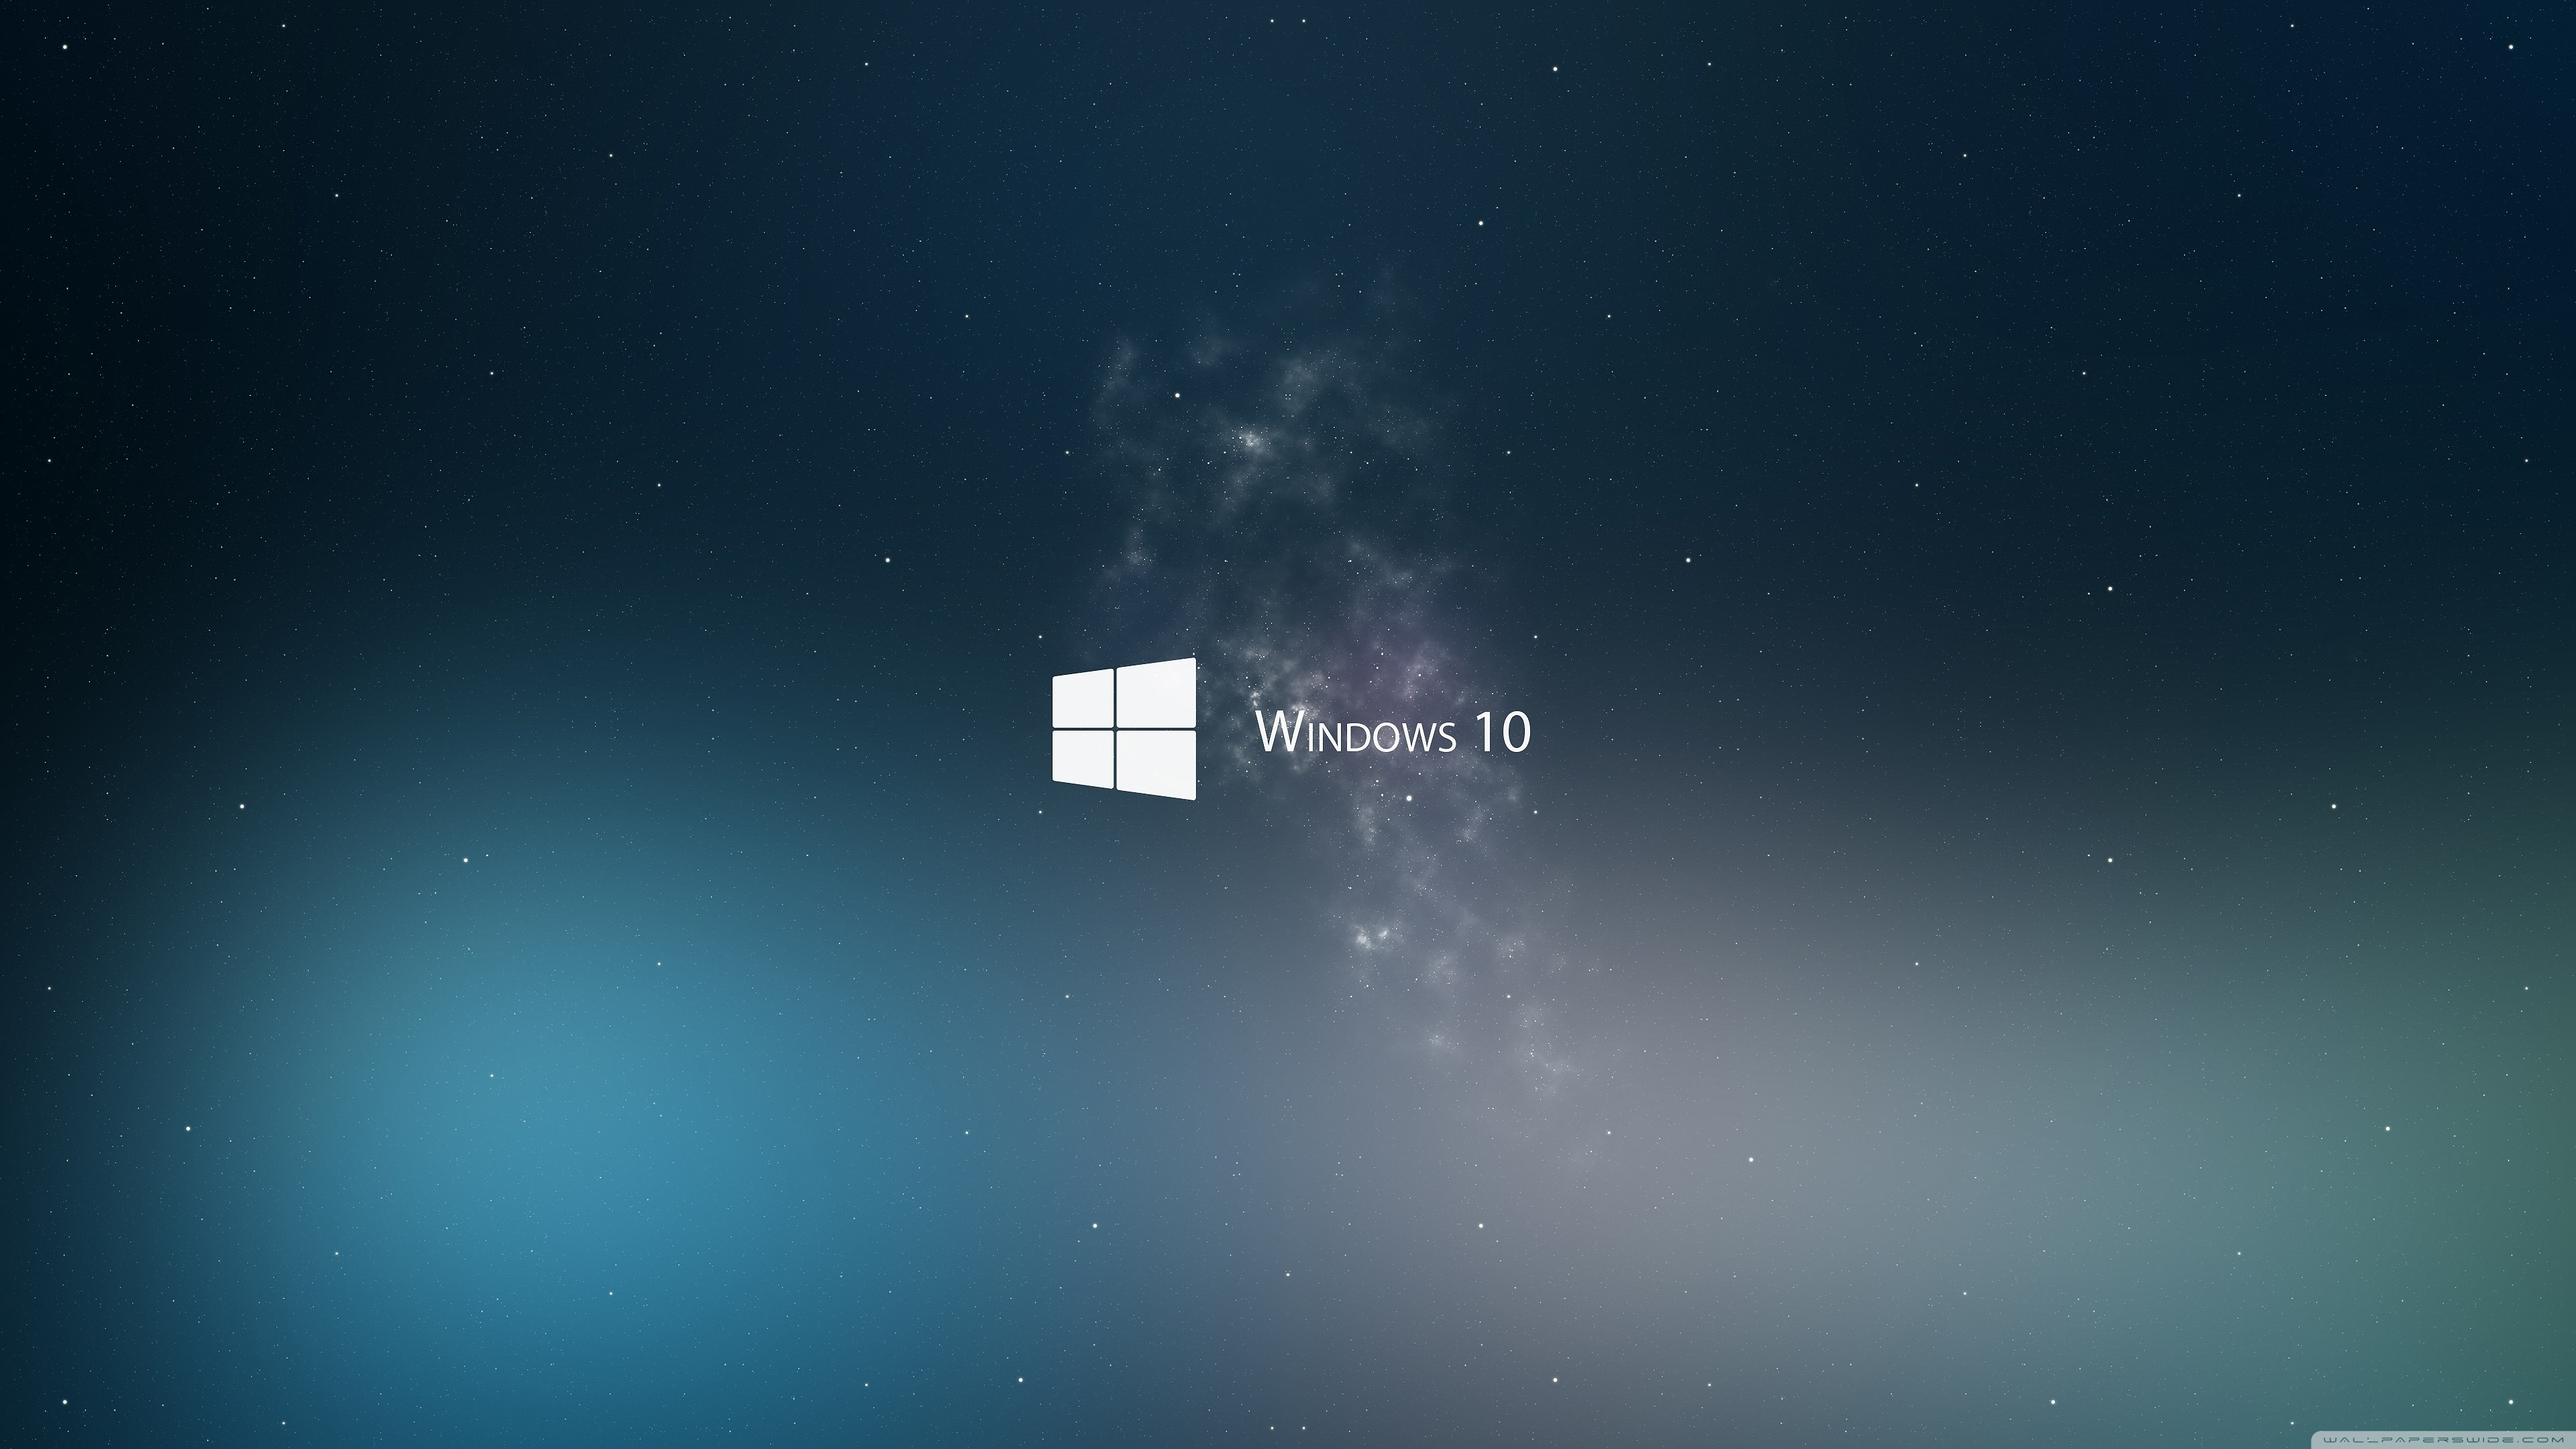 Windows Hq Wallpaper